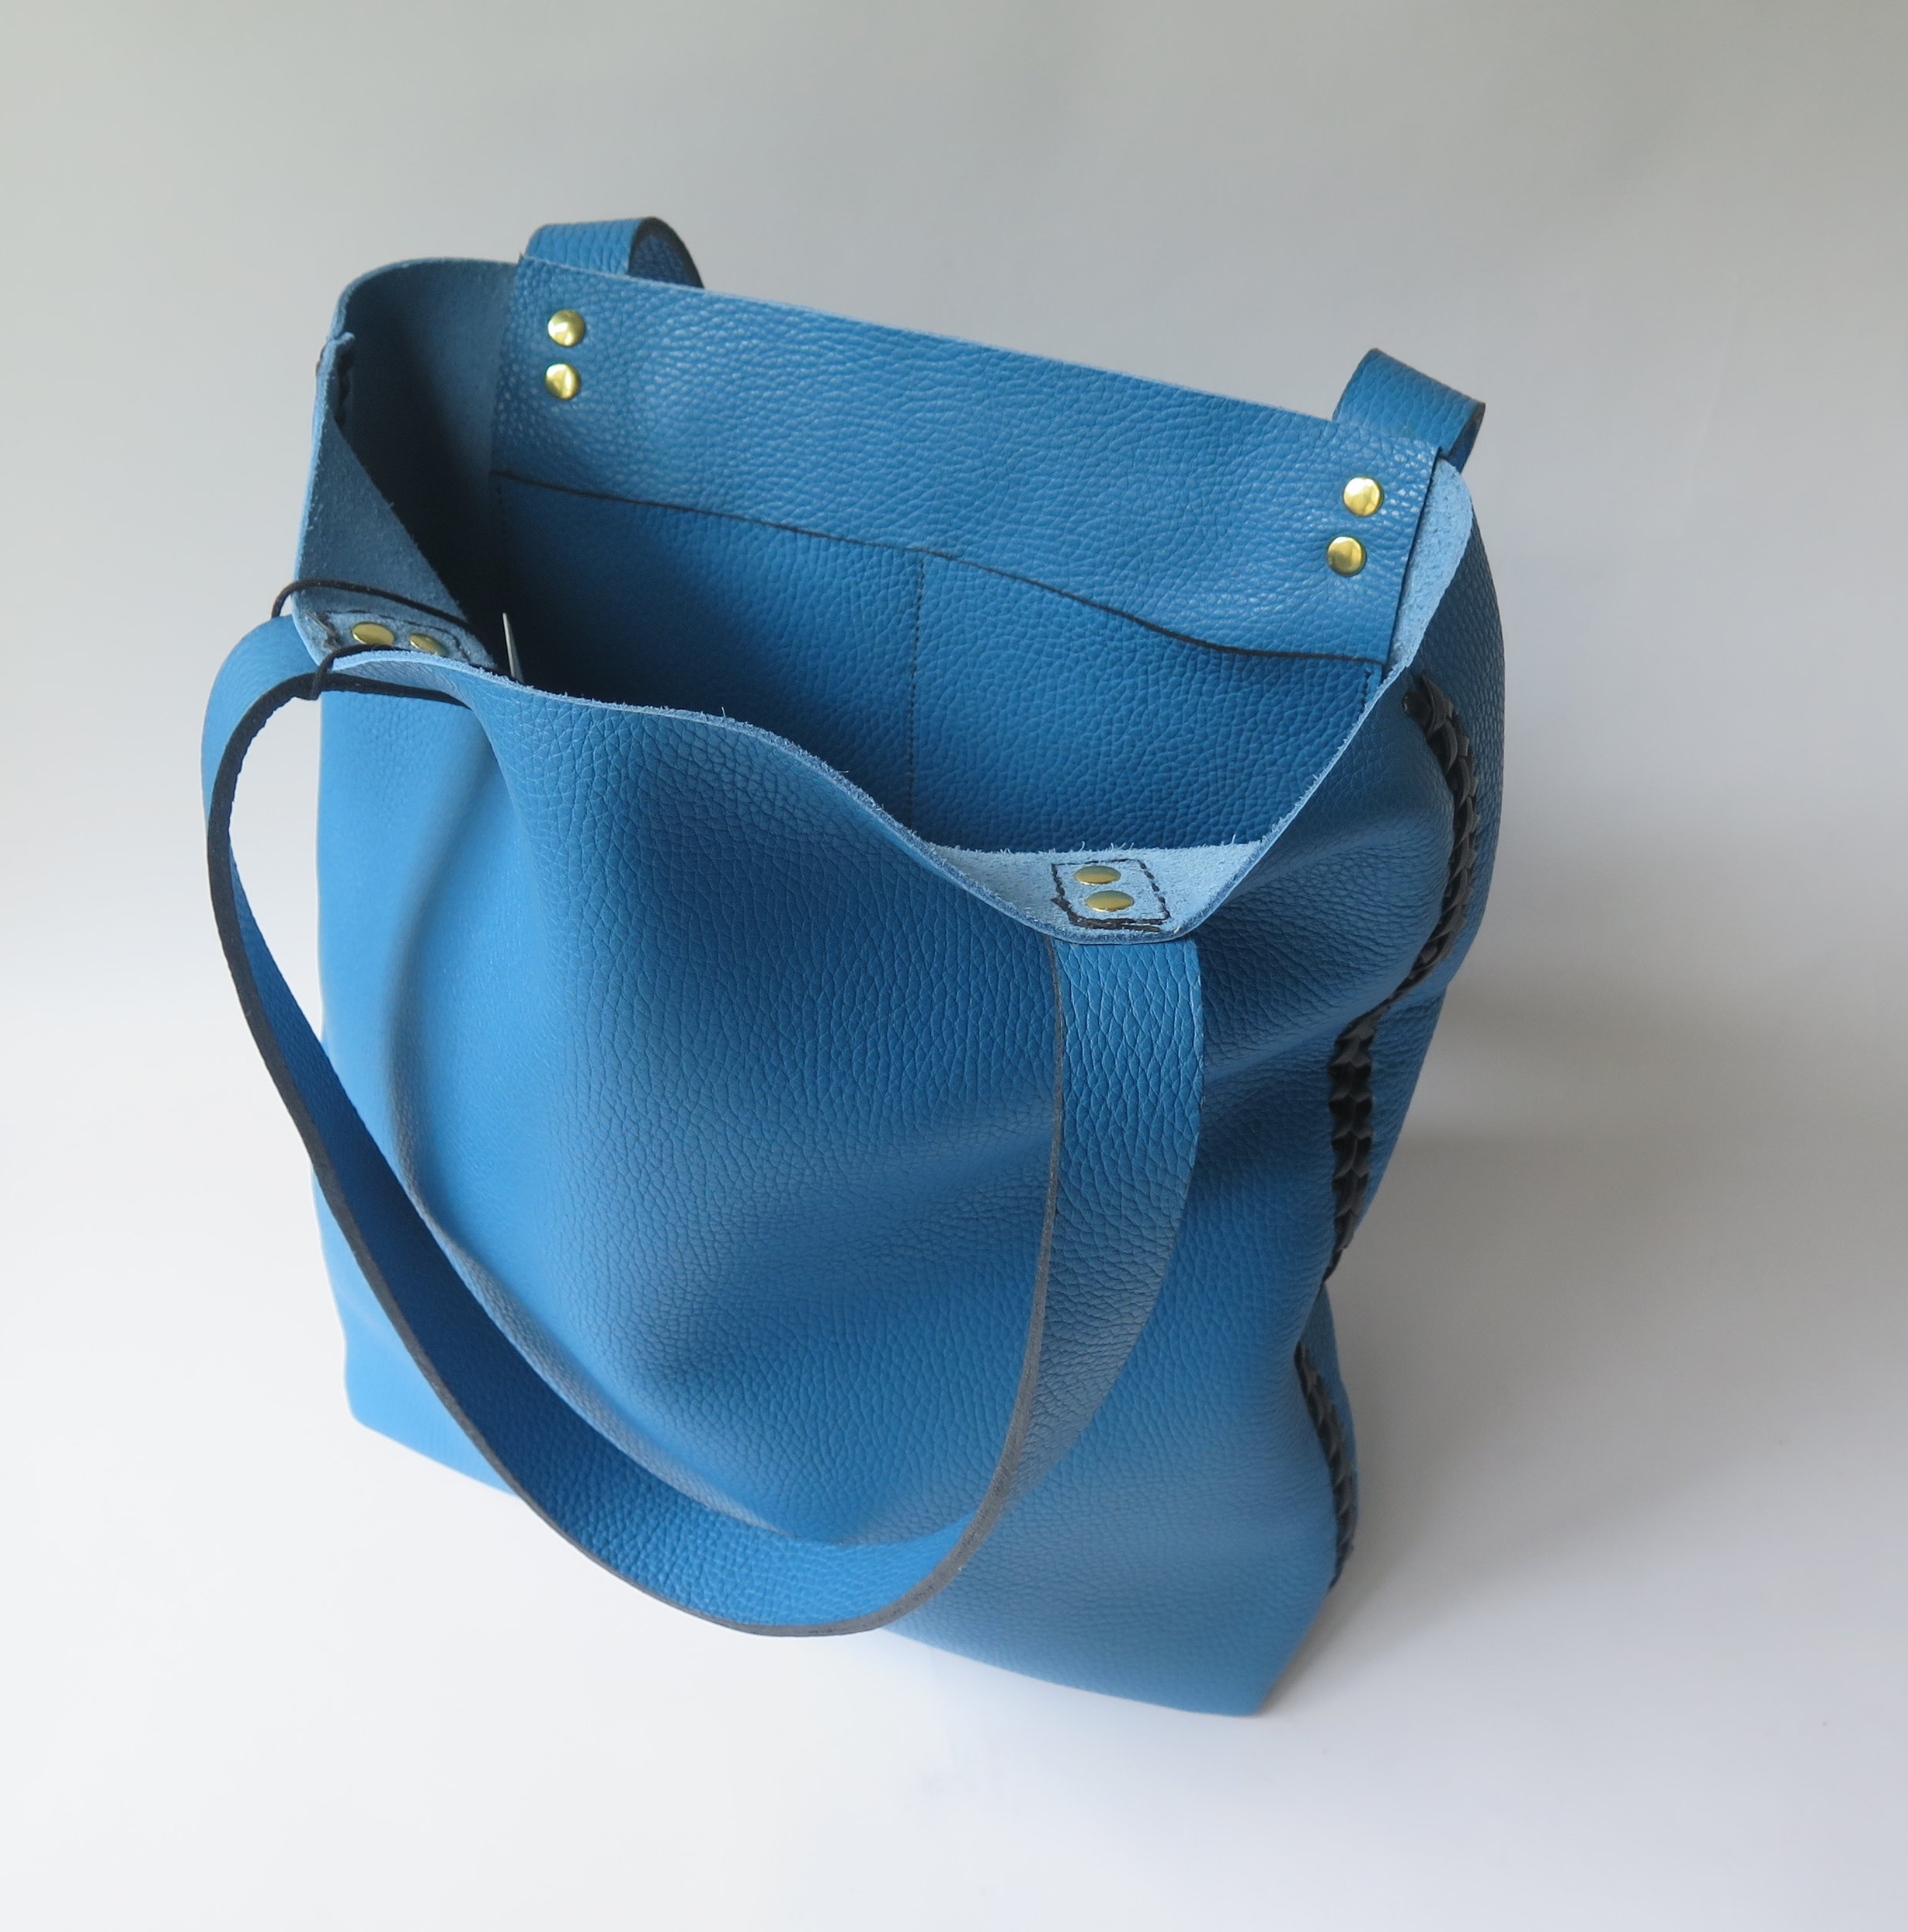 mary-savel-leather-tote-blue-with-black-lacing-2.JPG